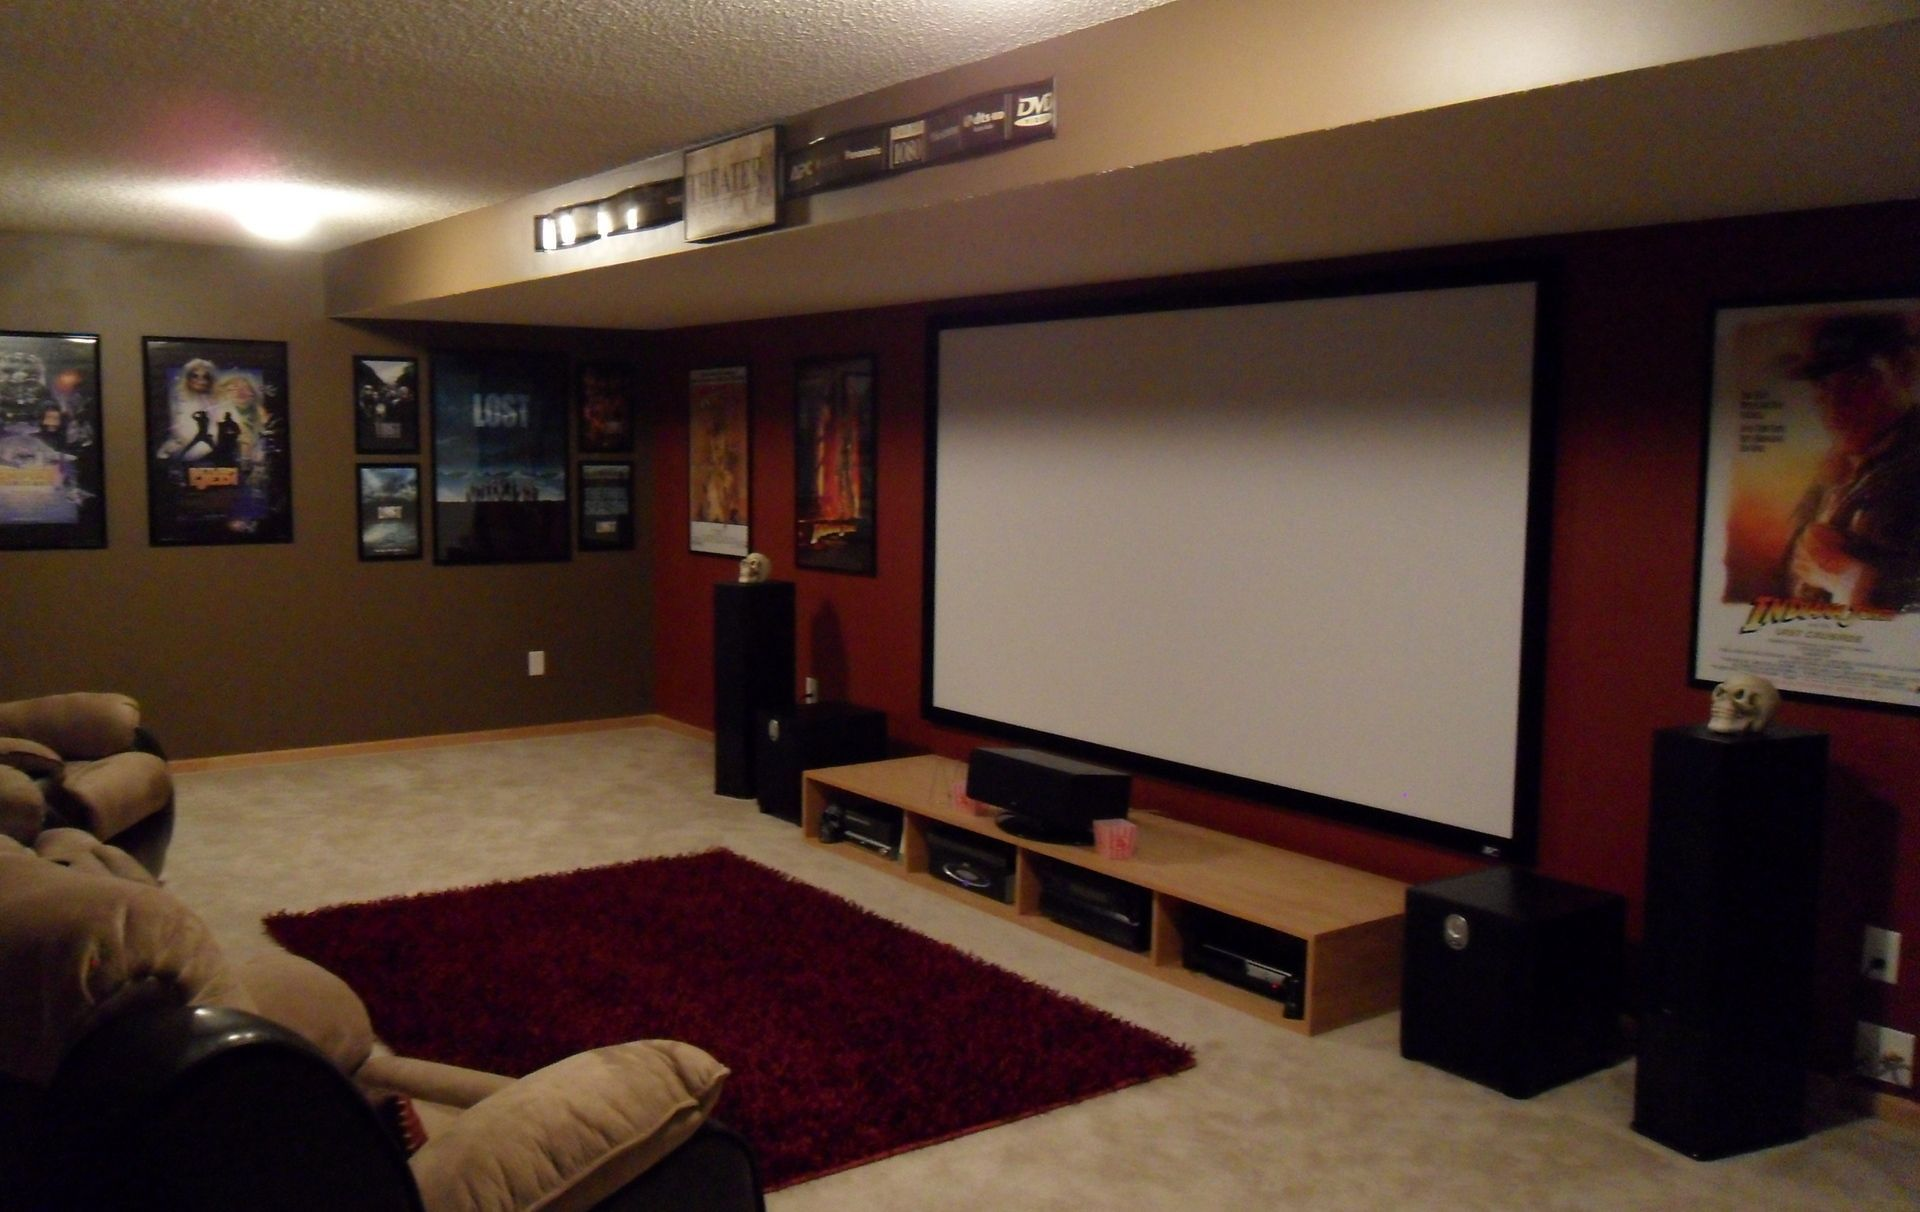 Basement Home Theater Ideas Diy Small Spaces Budget Medium Mesmerizing Living Room Home Theater Ideas Inspiration Design